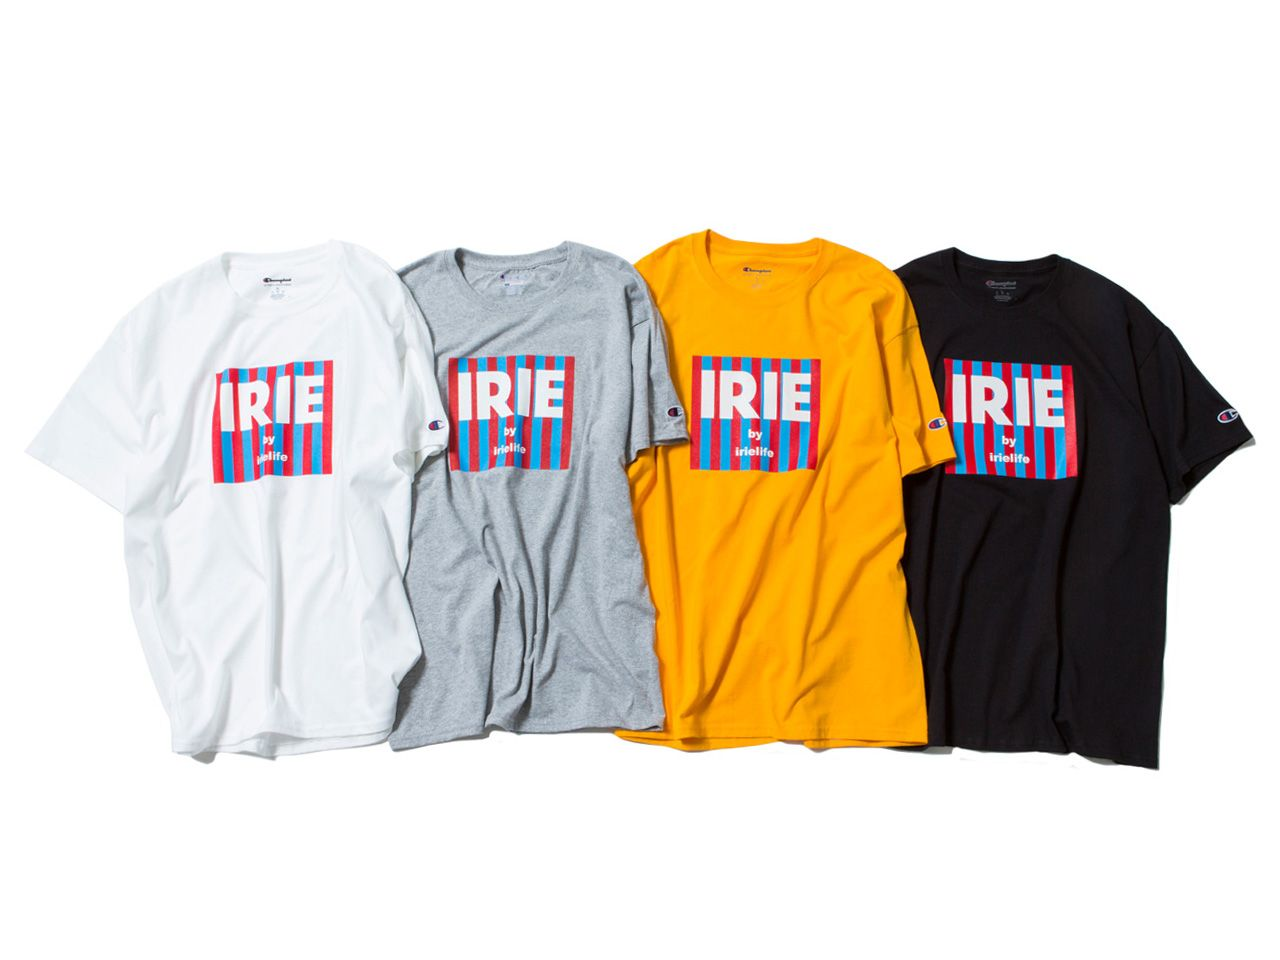 US IRIE TAG TEE -IRIE by irielife-